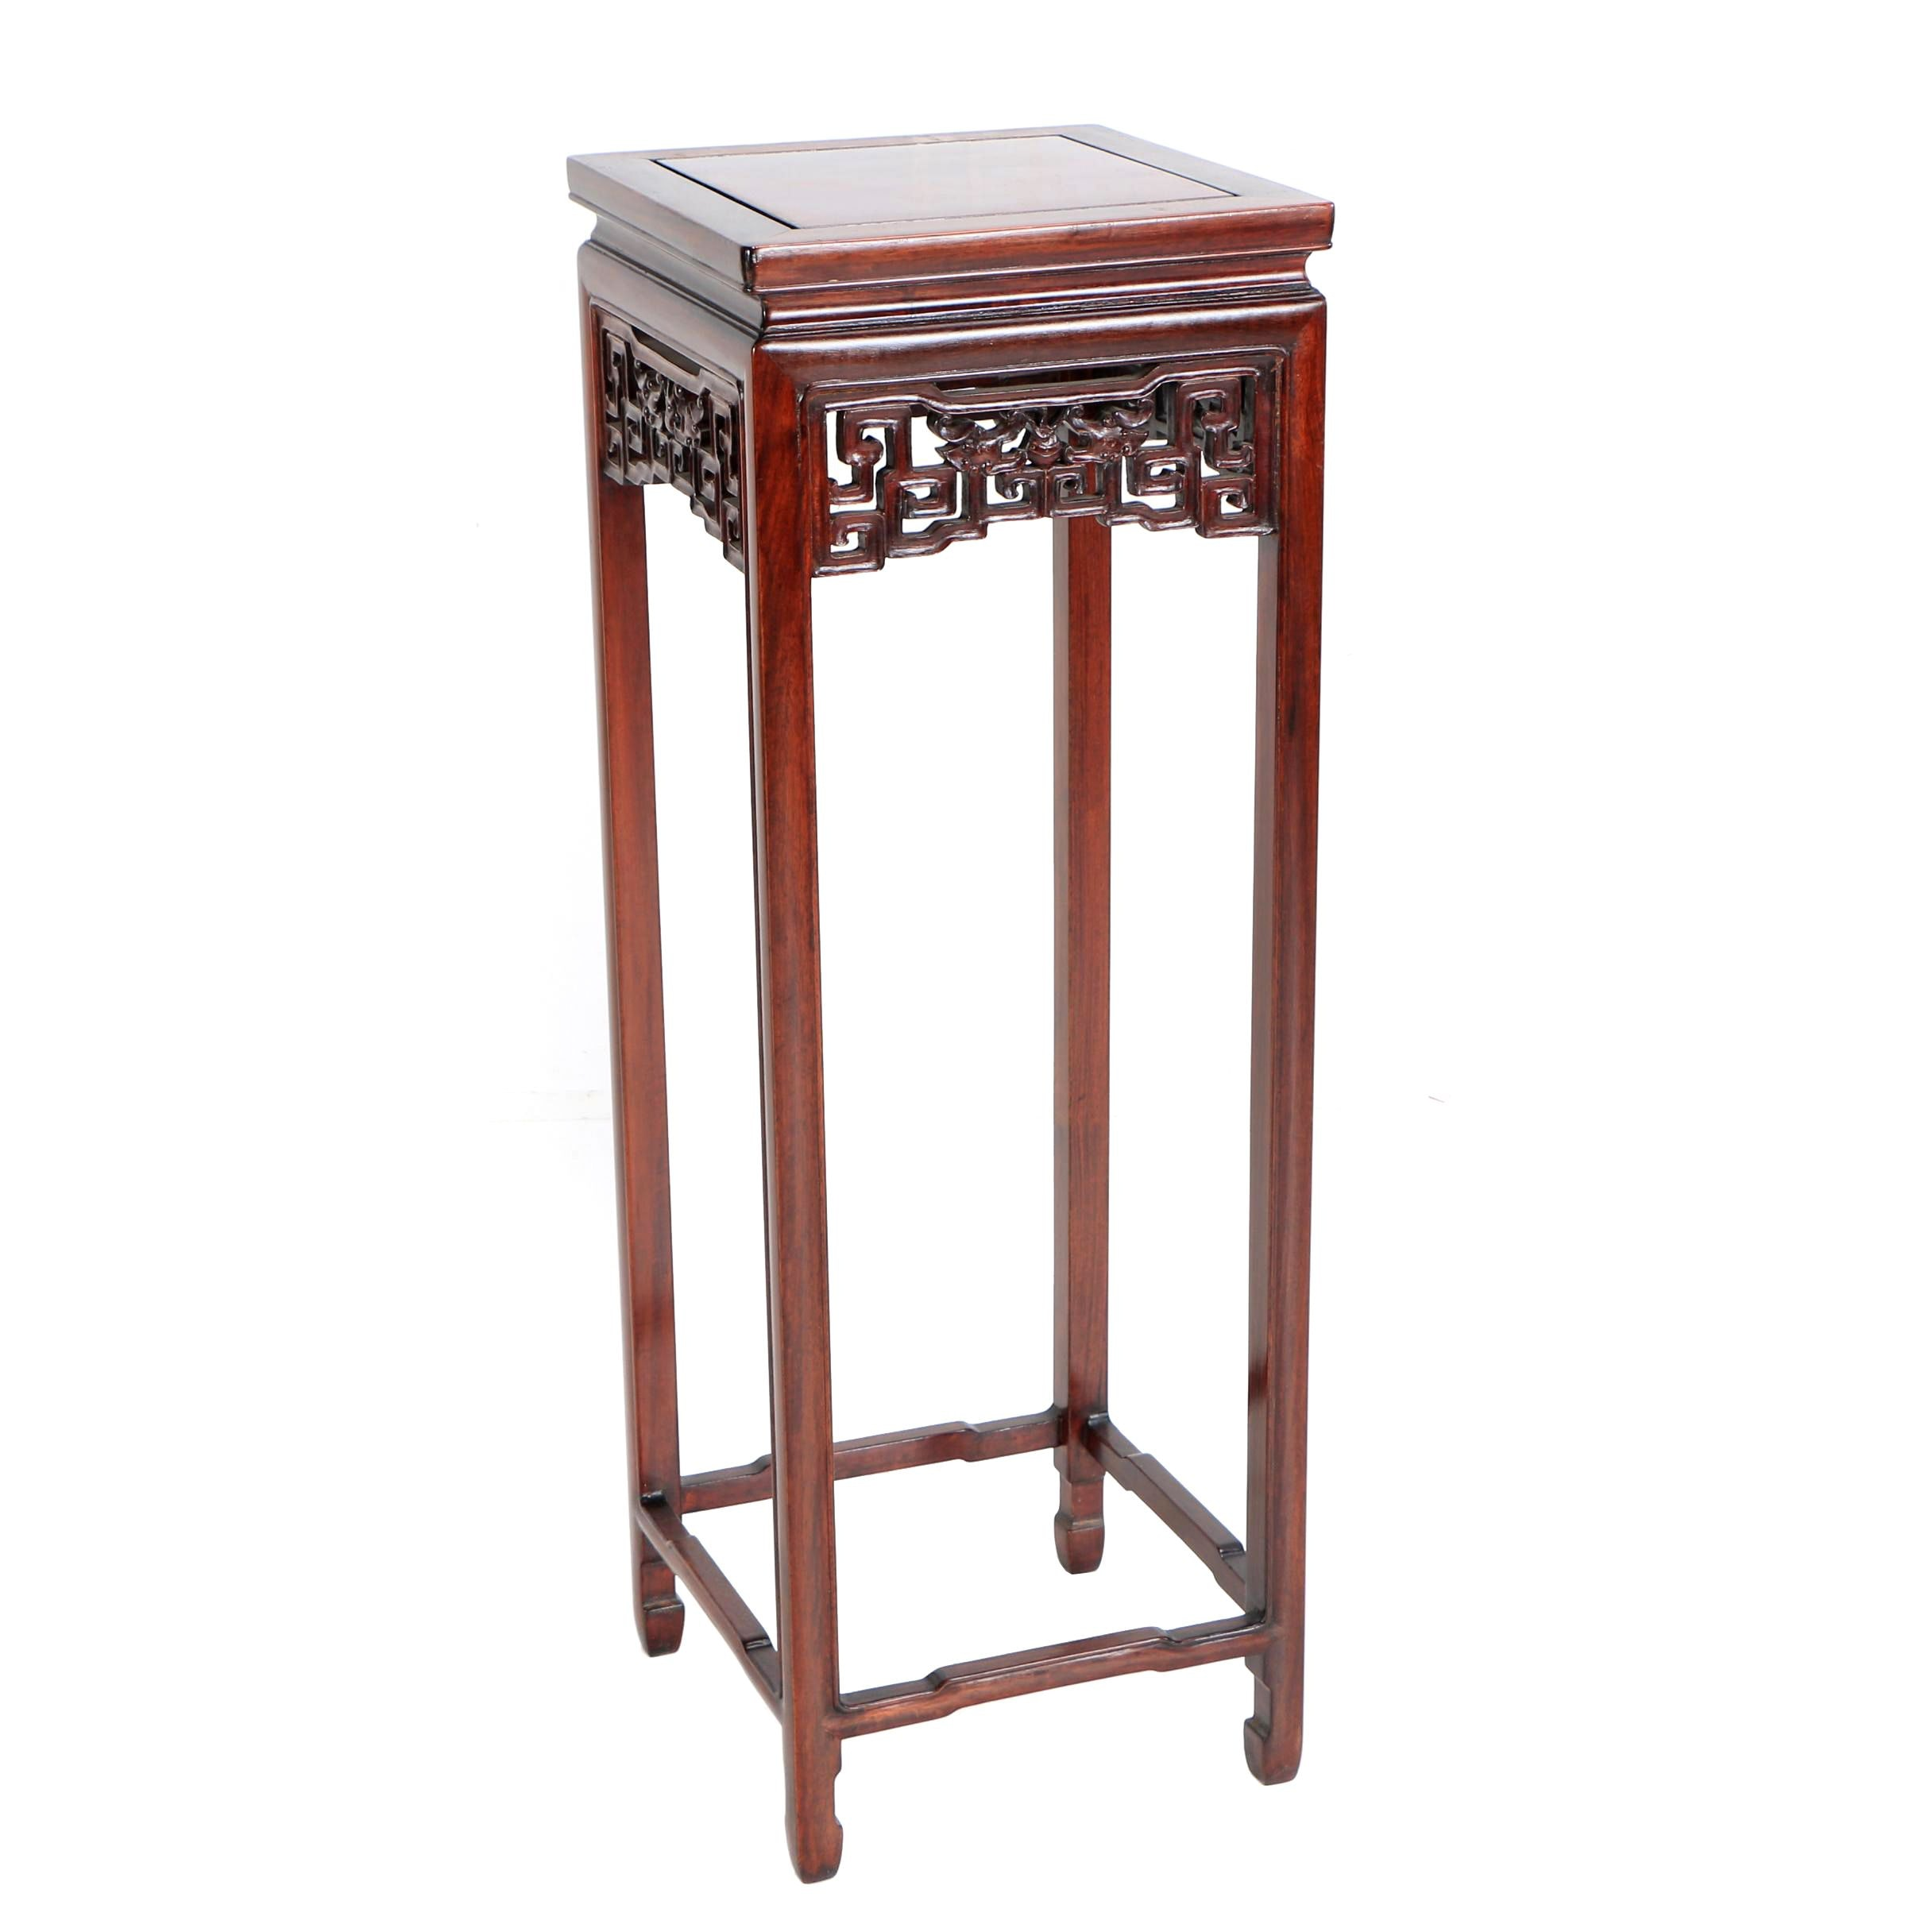 Chinese Cherry Finish Wooden Plant Stand with Meander Skirt